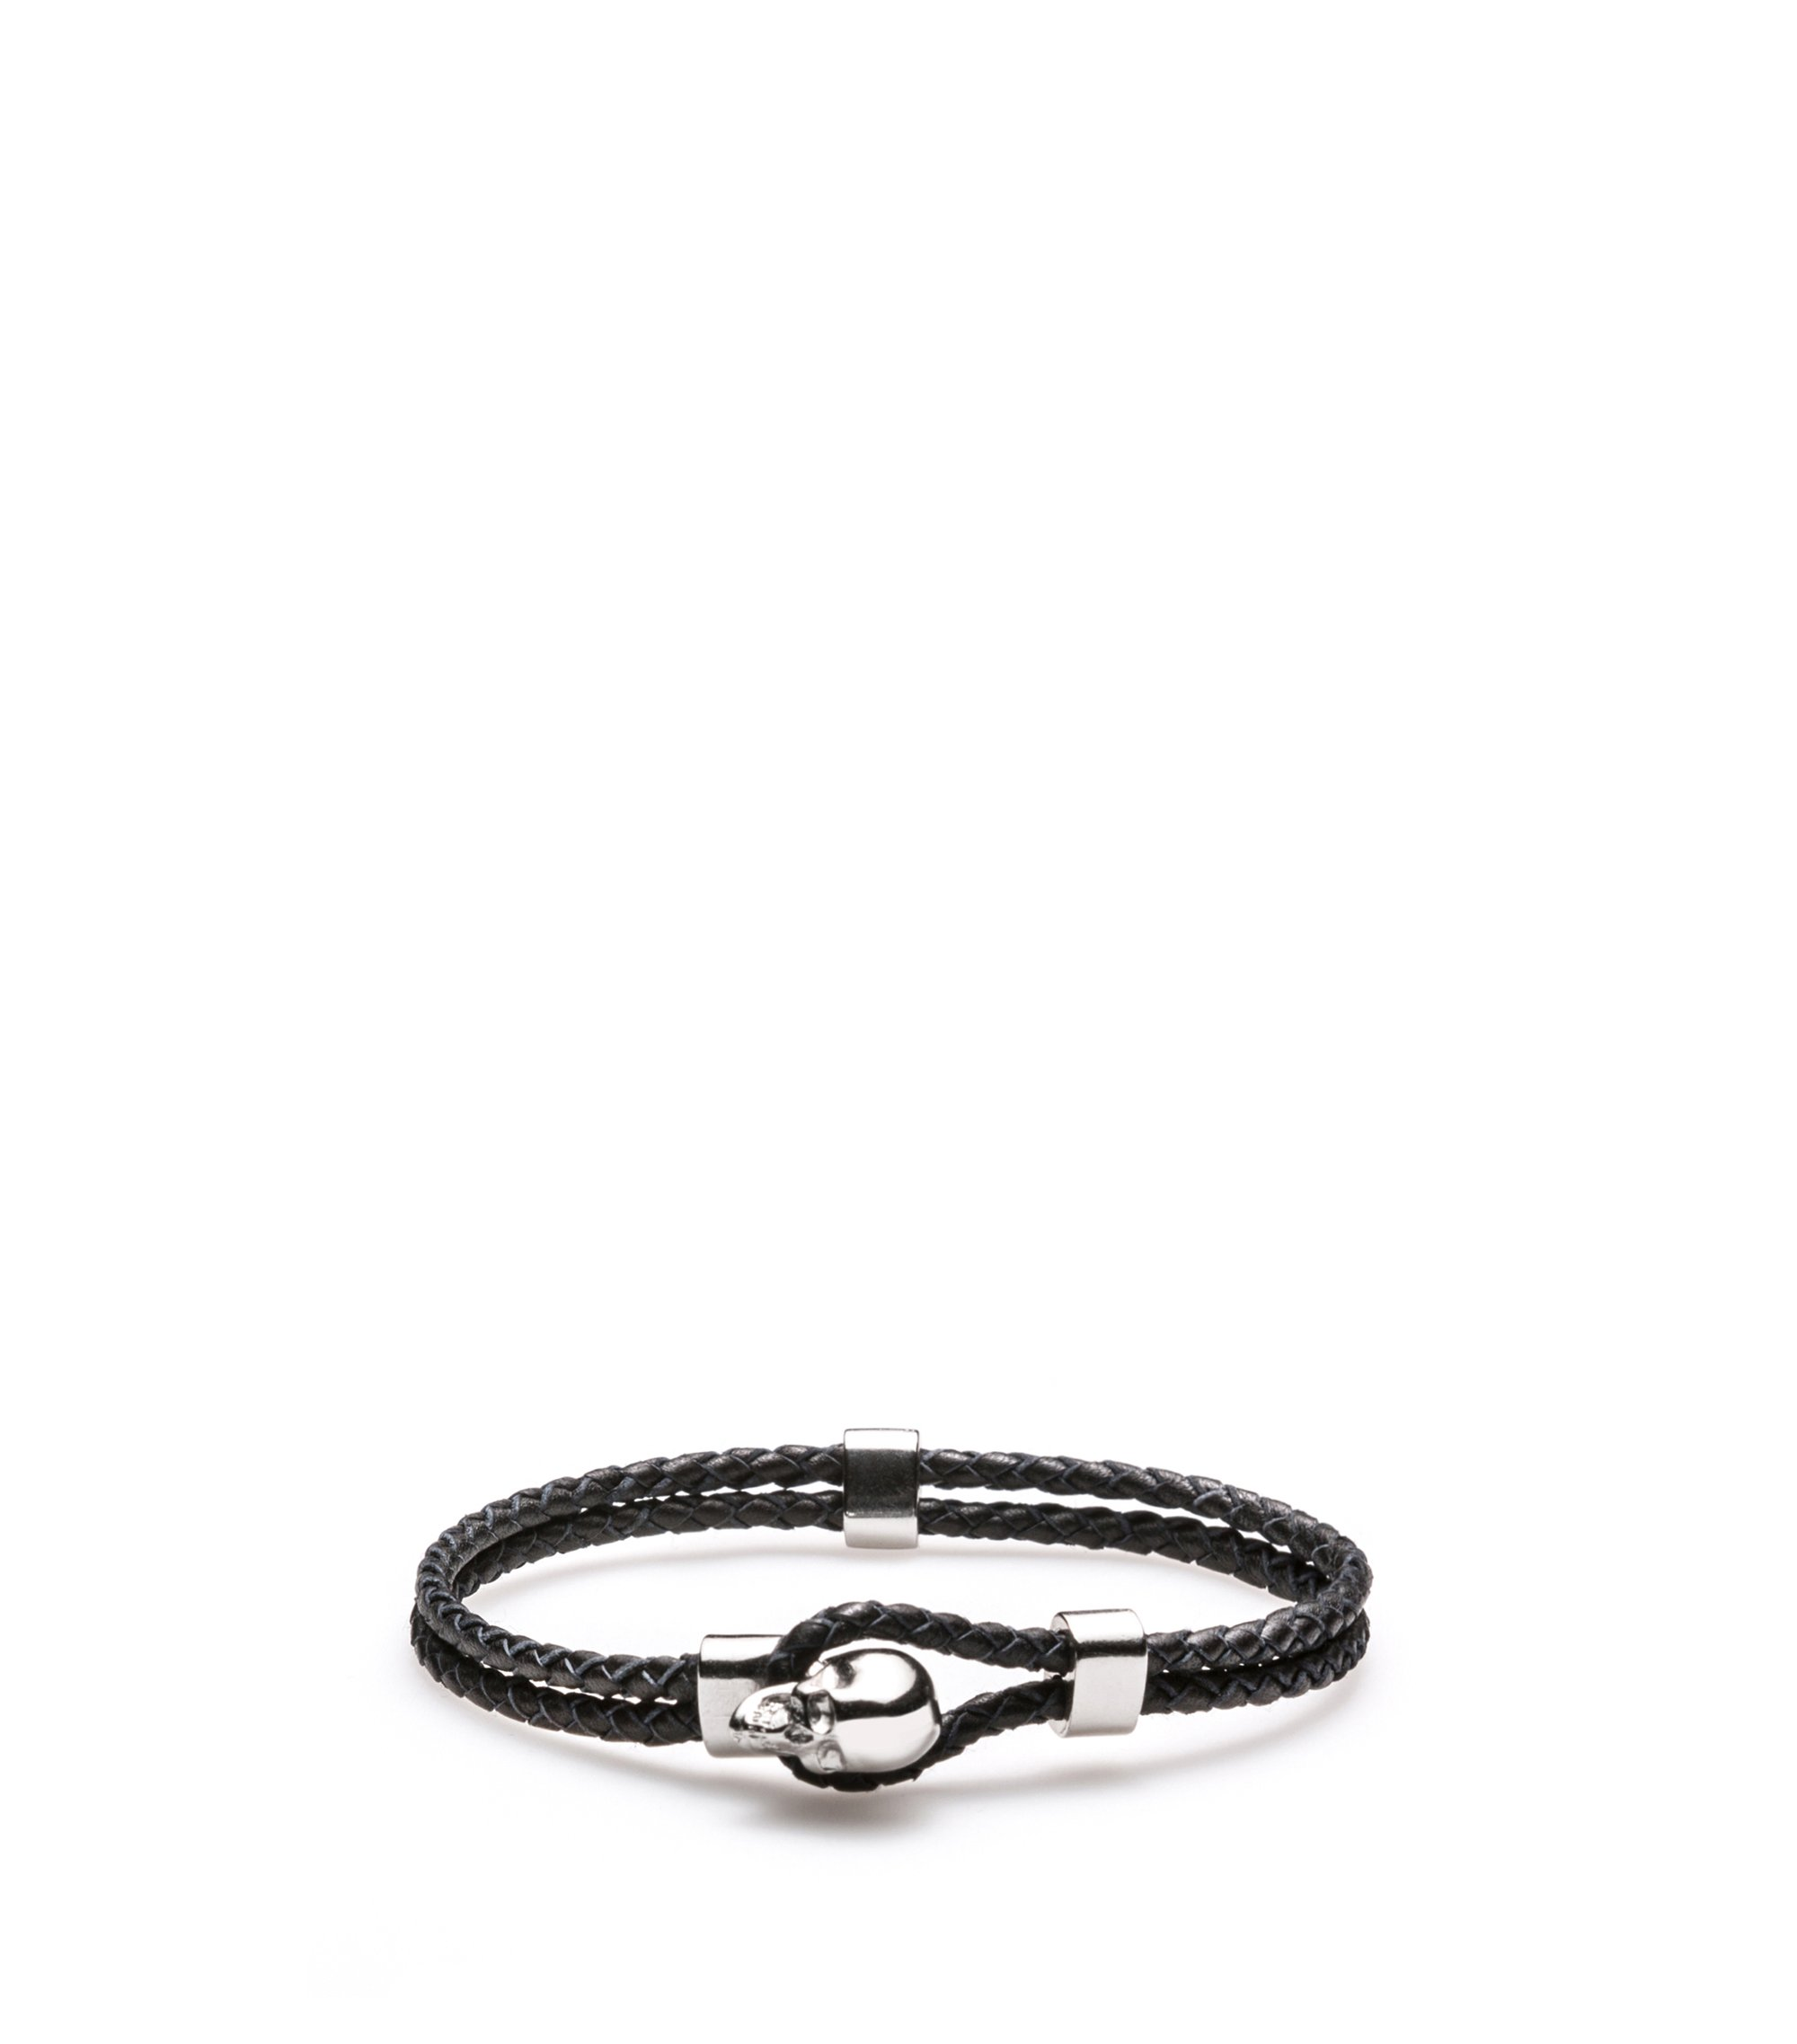 Braided-leather bracelet with skull closure, Black